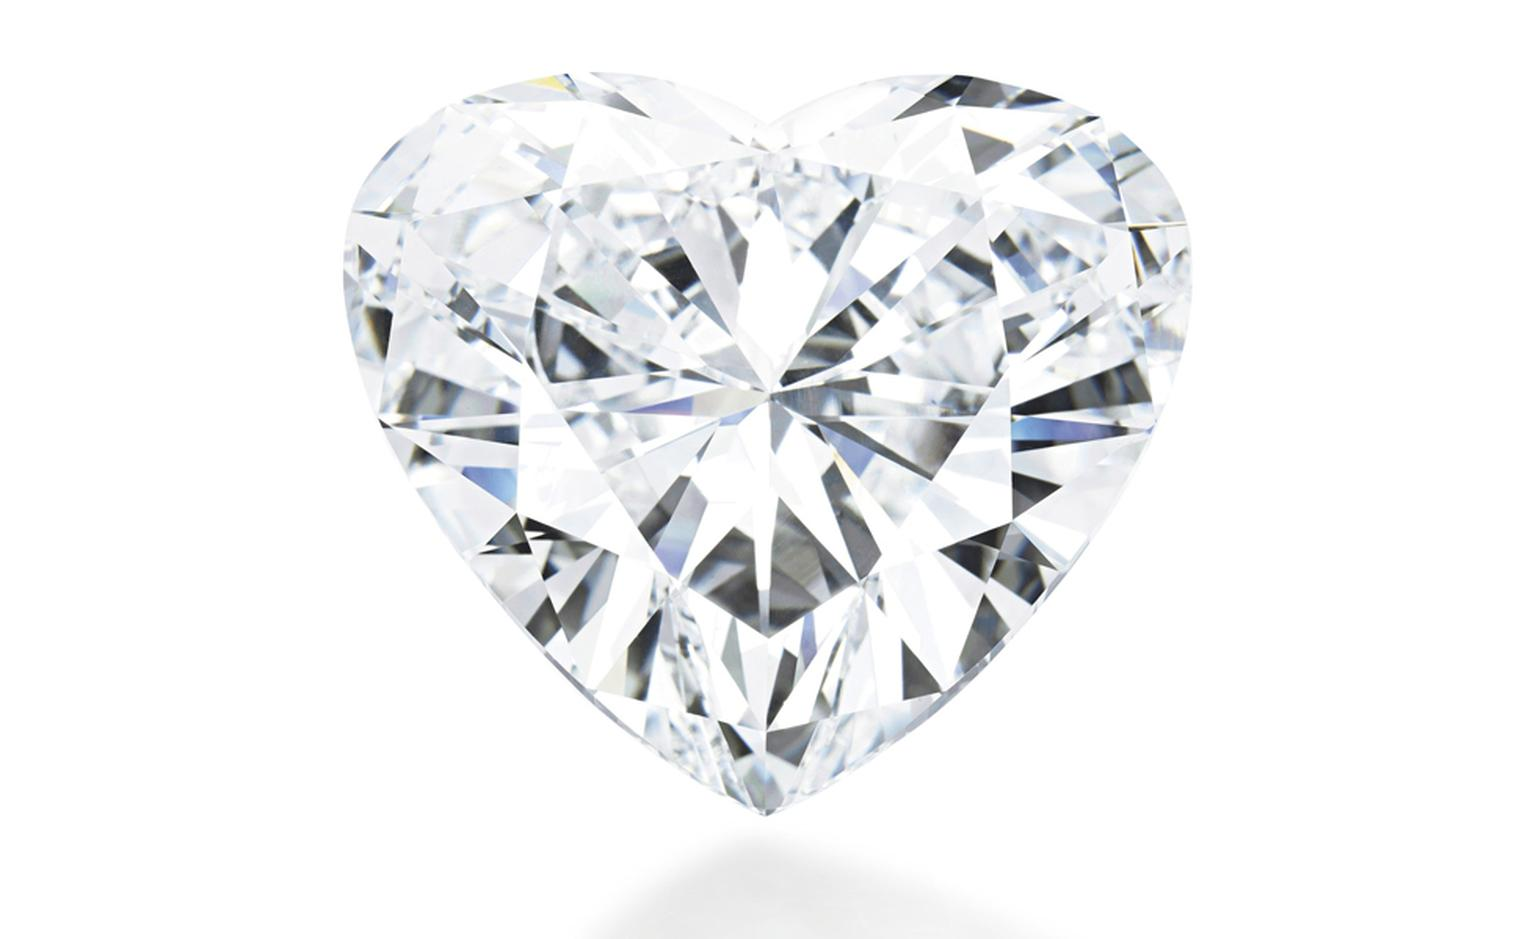 Lot 316. A magnificient unmounted diamond. The heart-shaped diamond weighing 56.15 carats, in red leather fitted case. Estimtate CHF 8,600,000 - CHF 11,500,000 SOLD FOR CHF 9,619,000